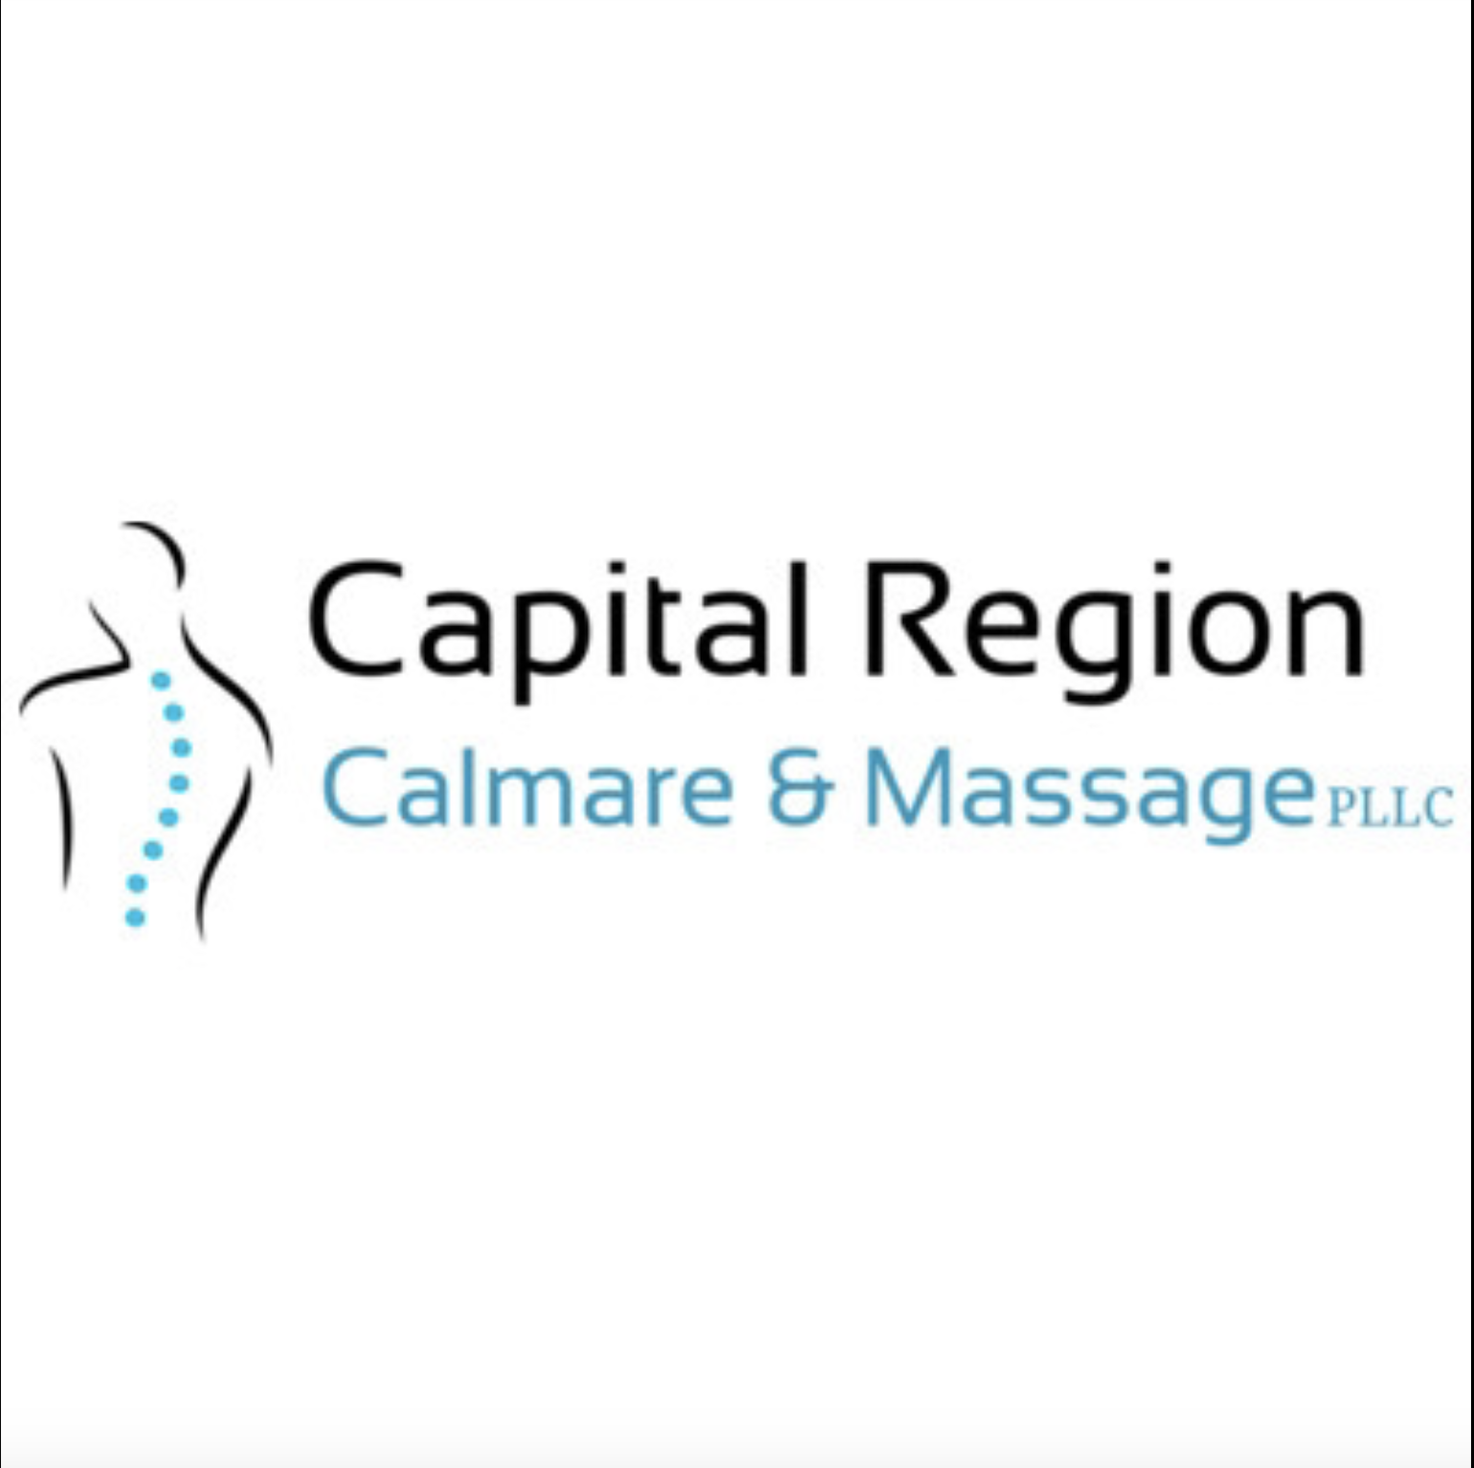 Capital Region Calmare & Massage